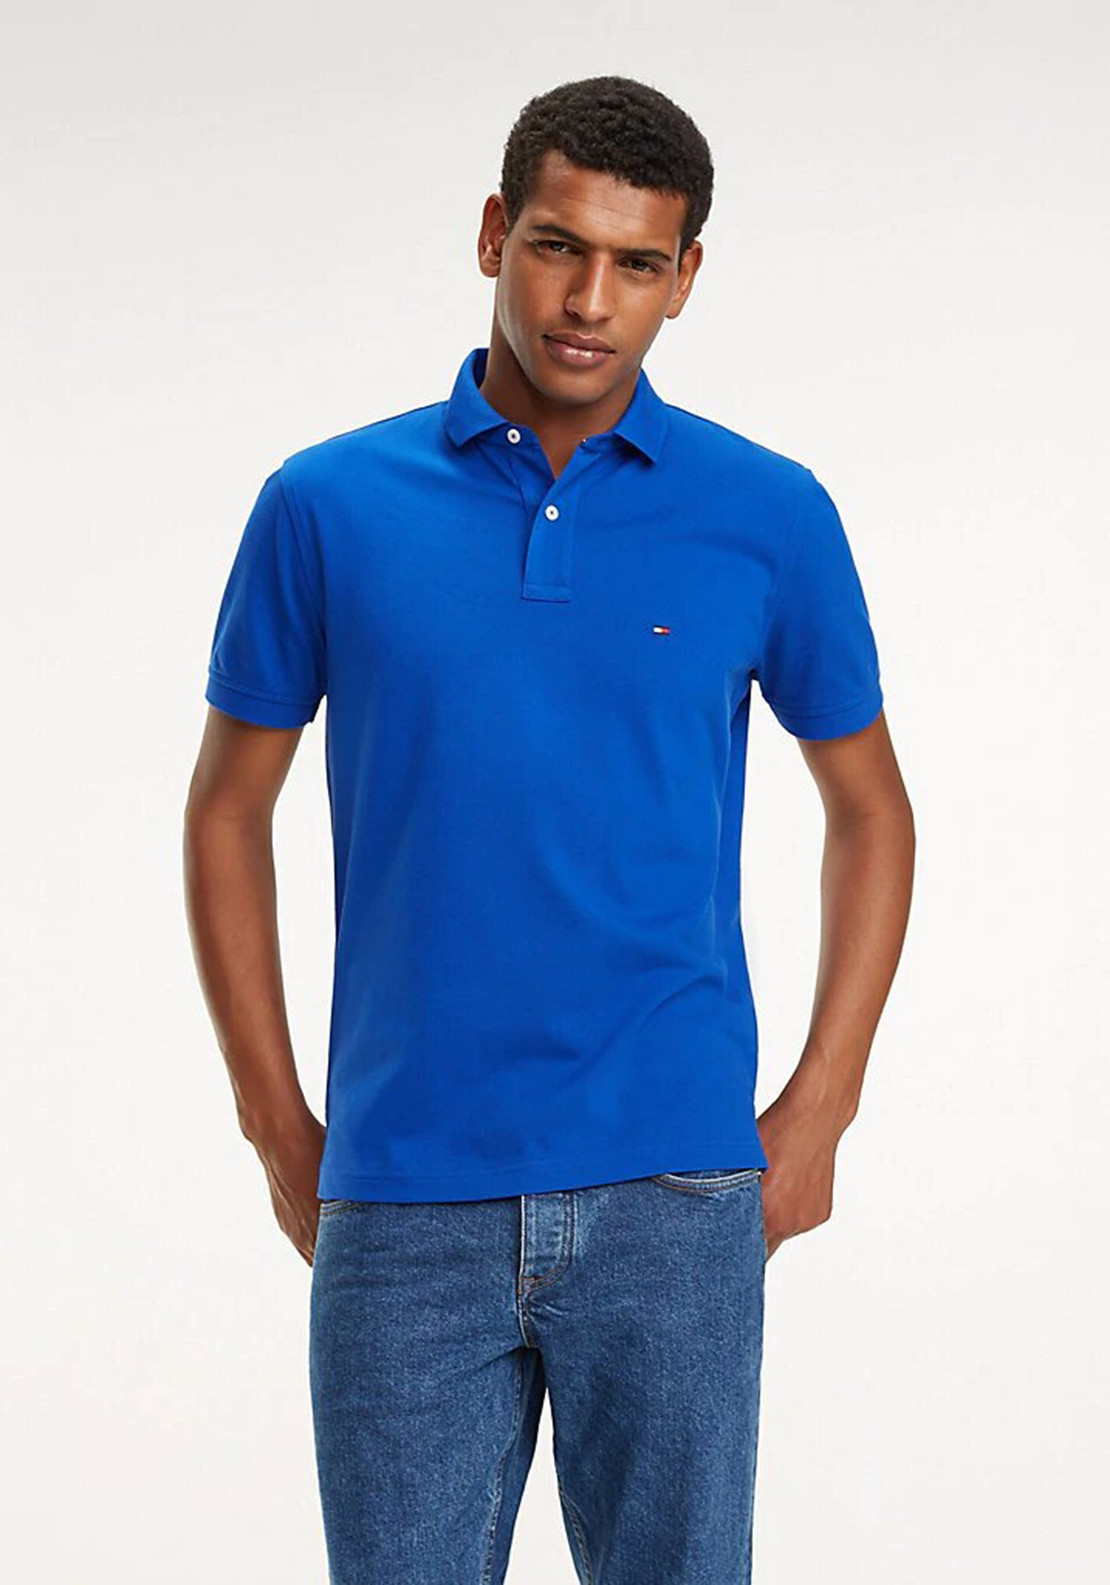 6ad4f204 Tommy Hilfiger's Surf The Web Polo Shirt, Blue. Be the first to review this  product